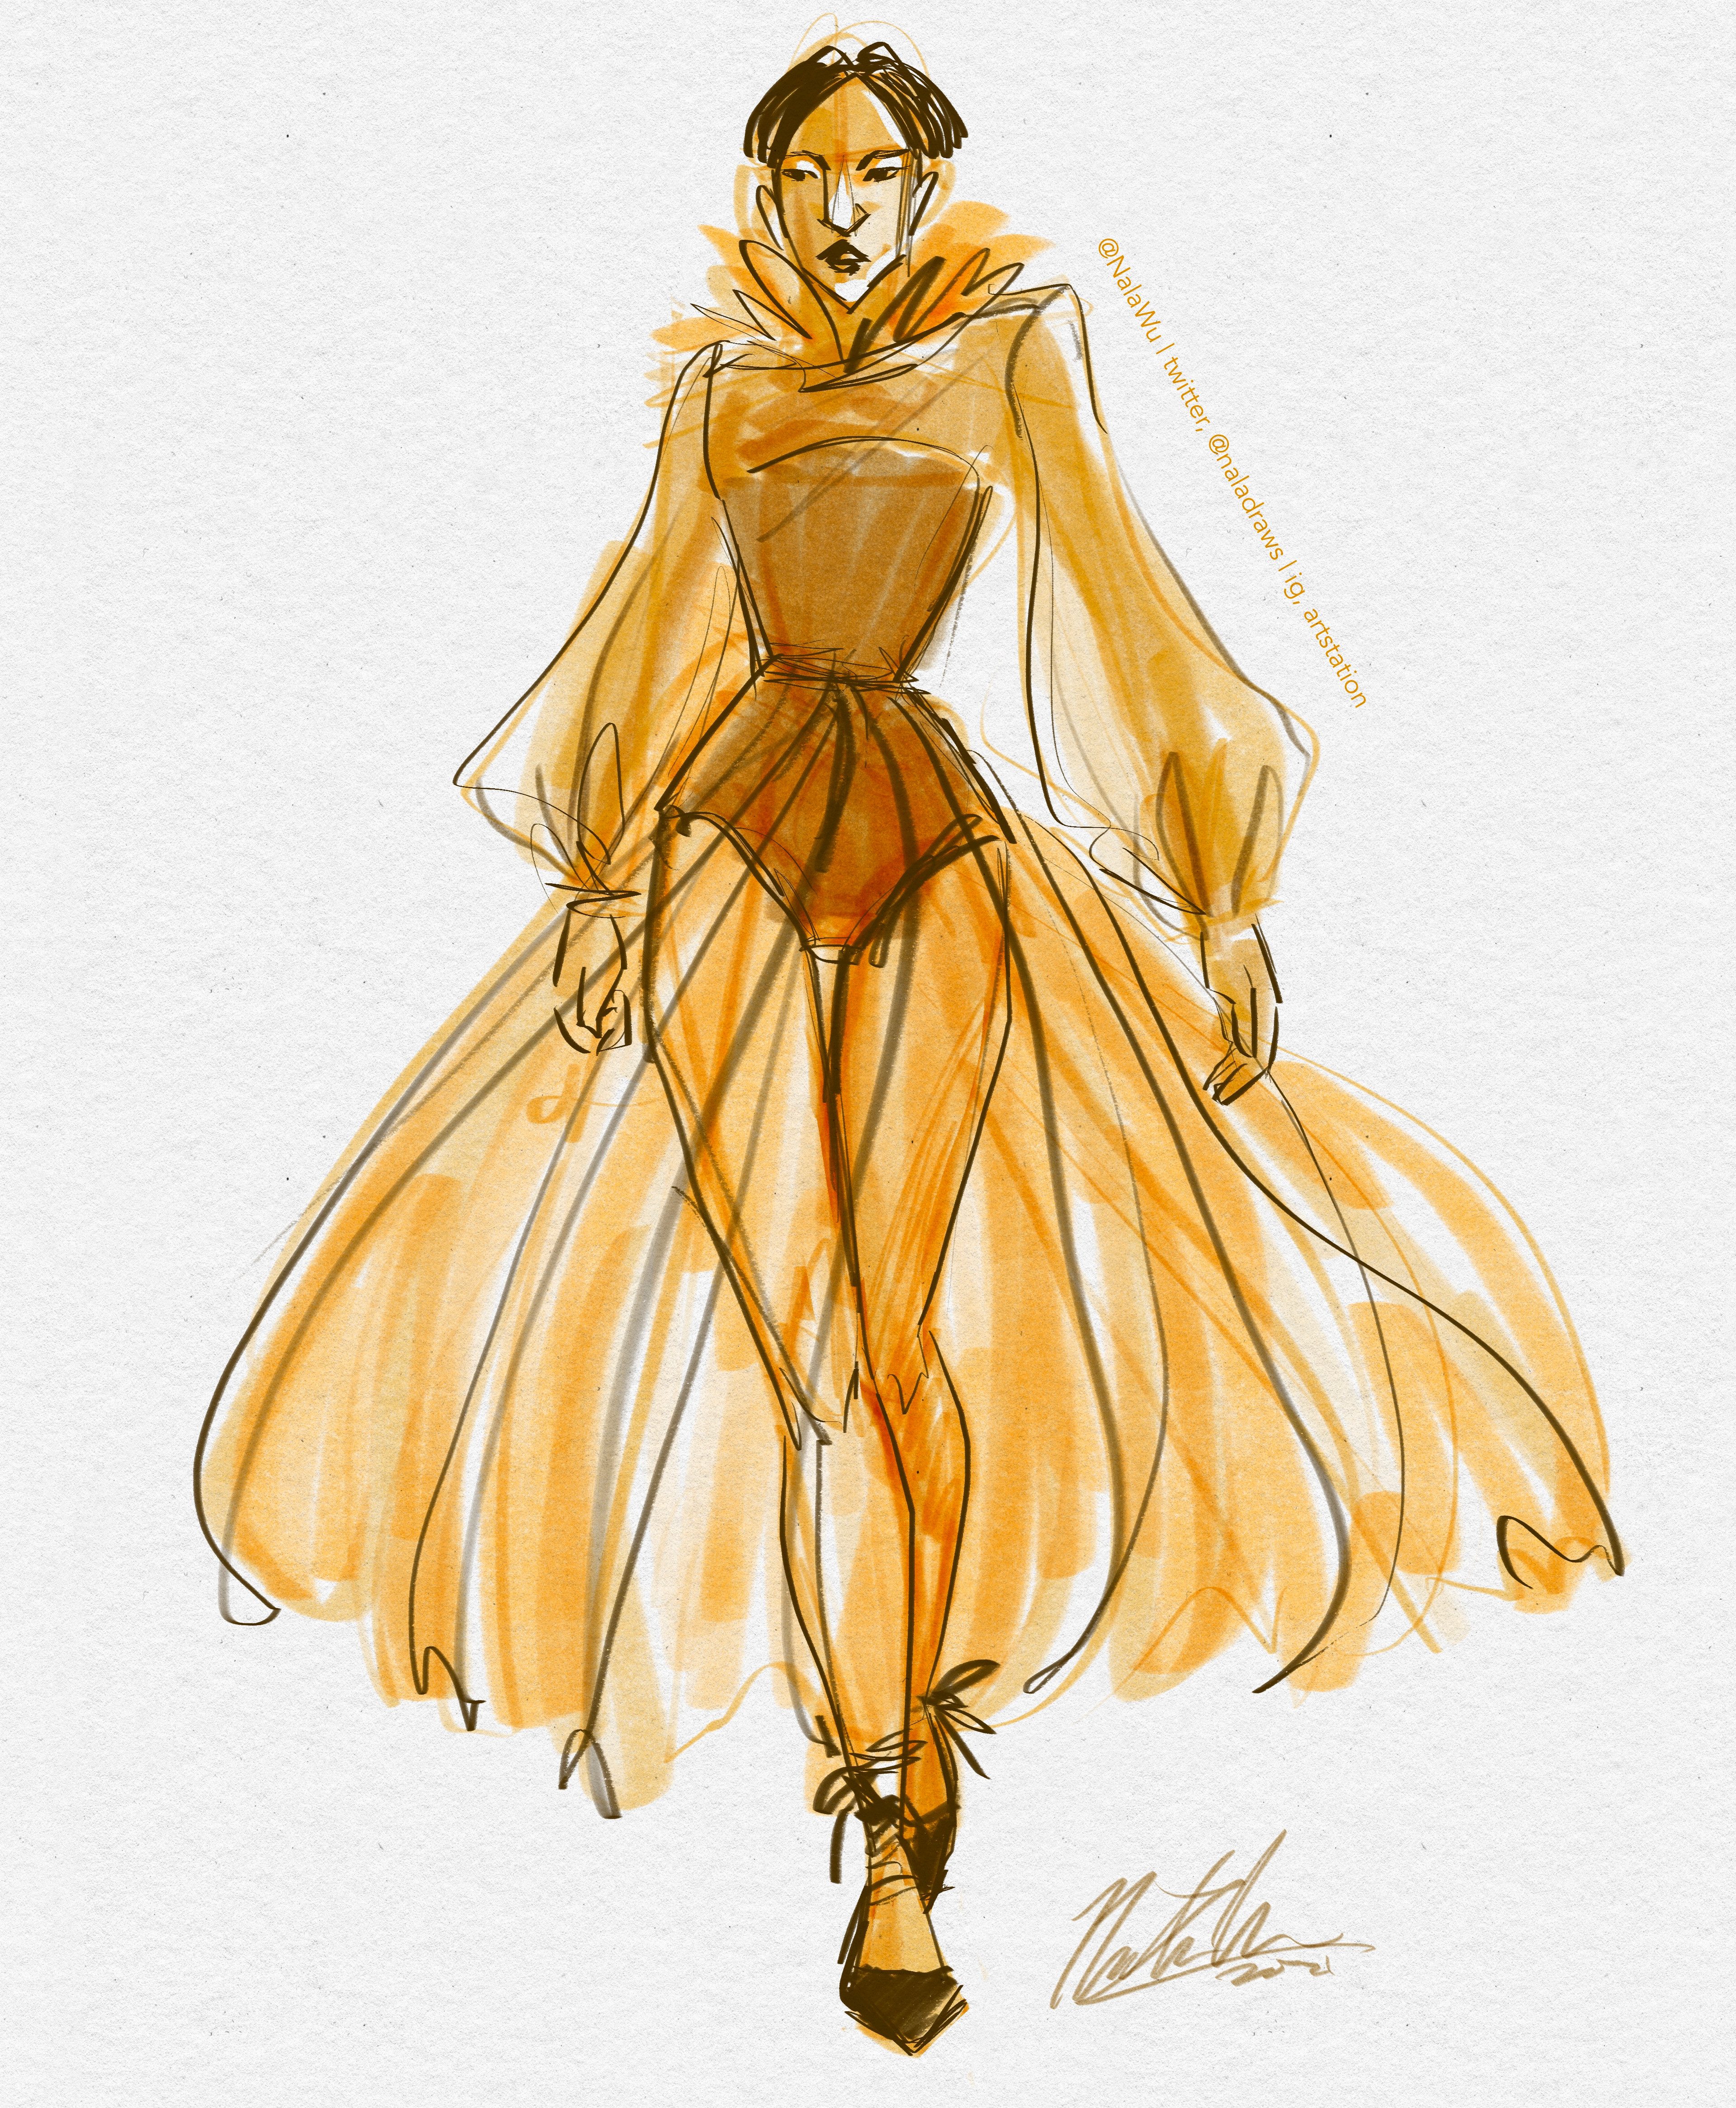 Yellow Dress Sketch (4 minutes)